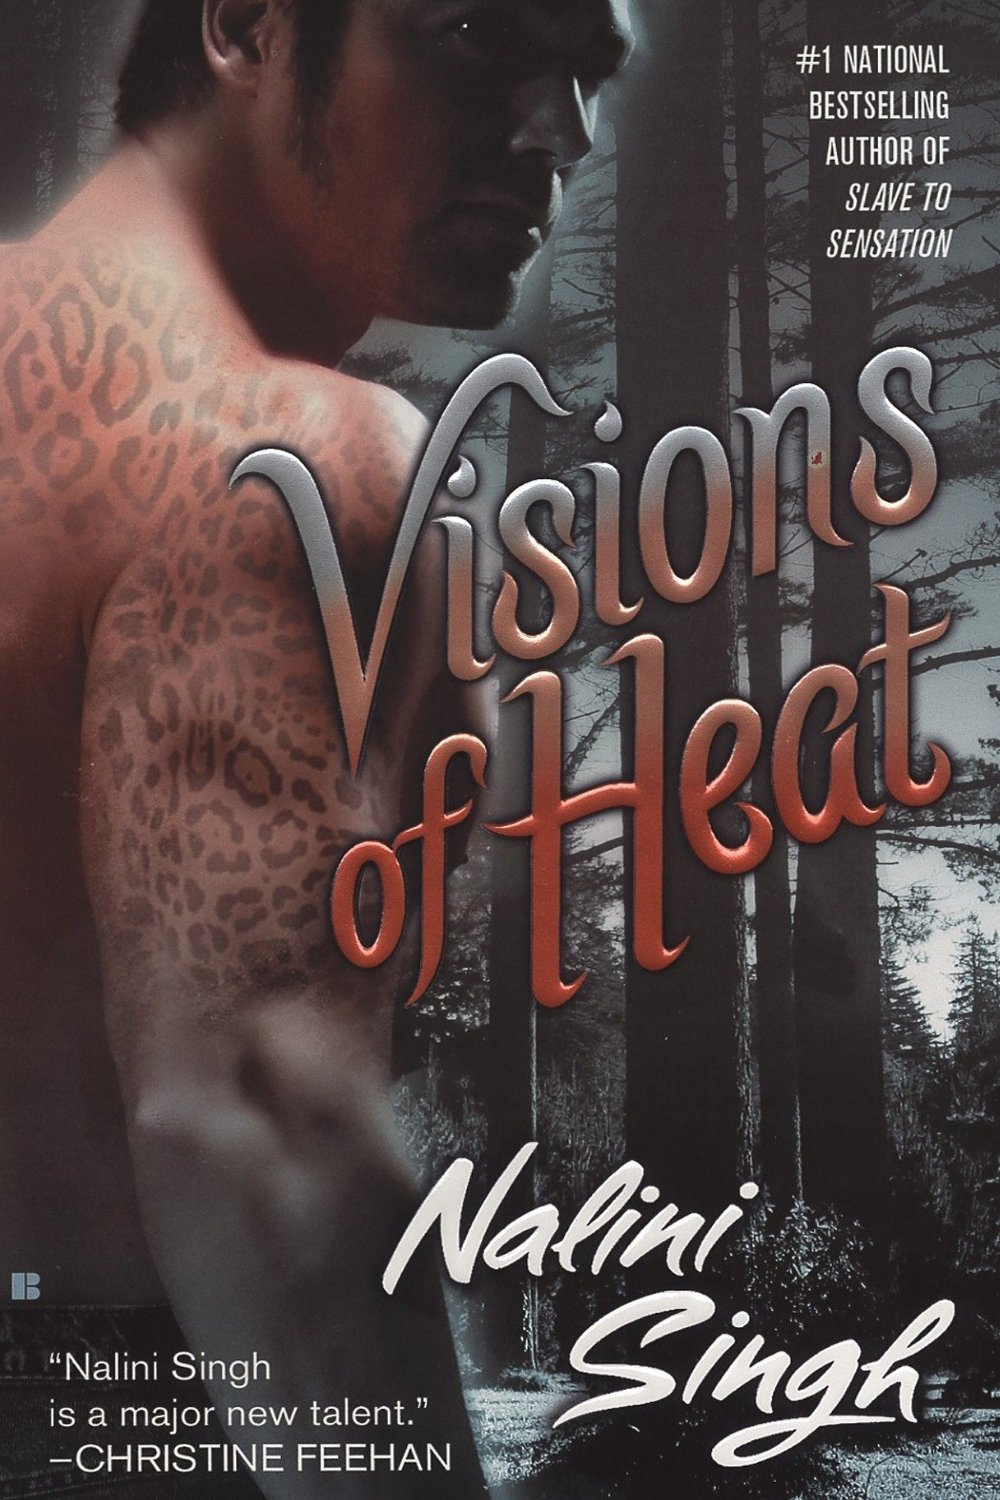 S2 E6 Visions of Heat by Nalini Singh